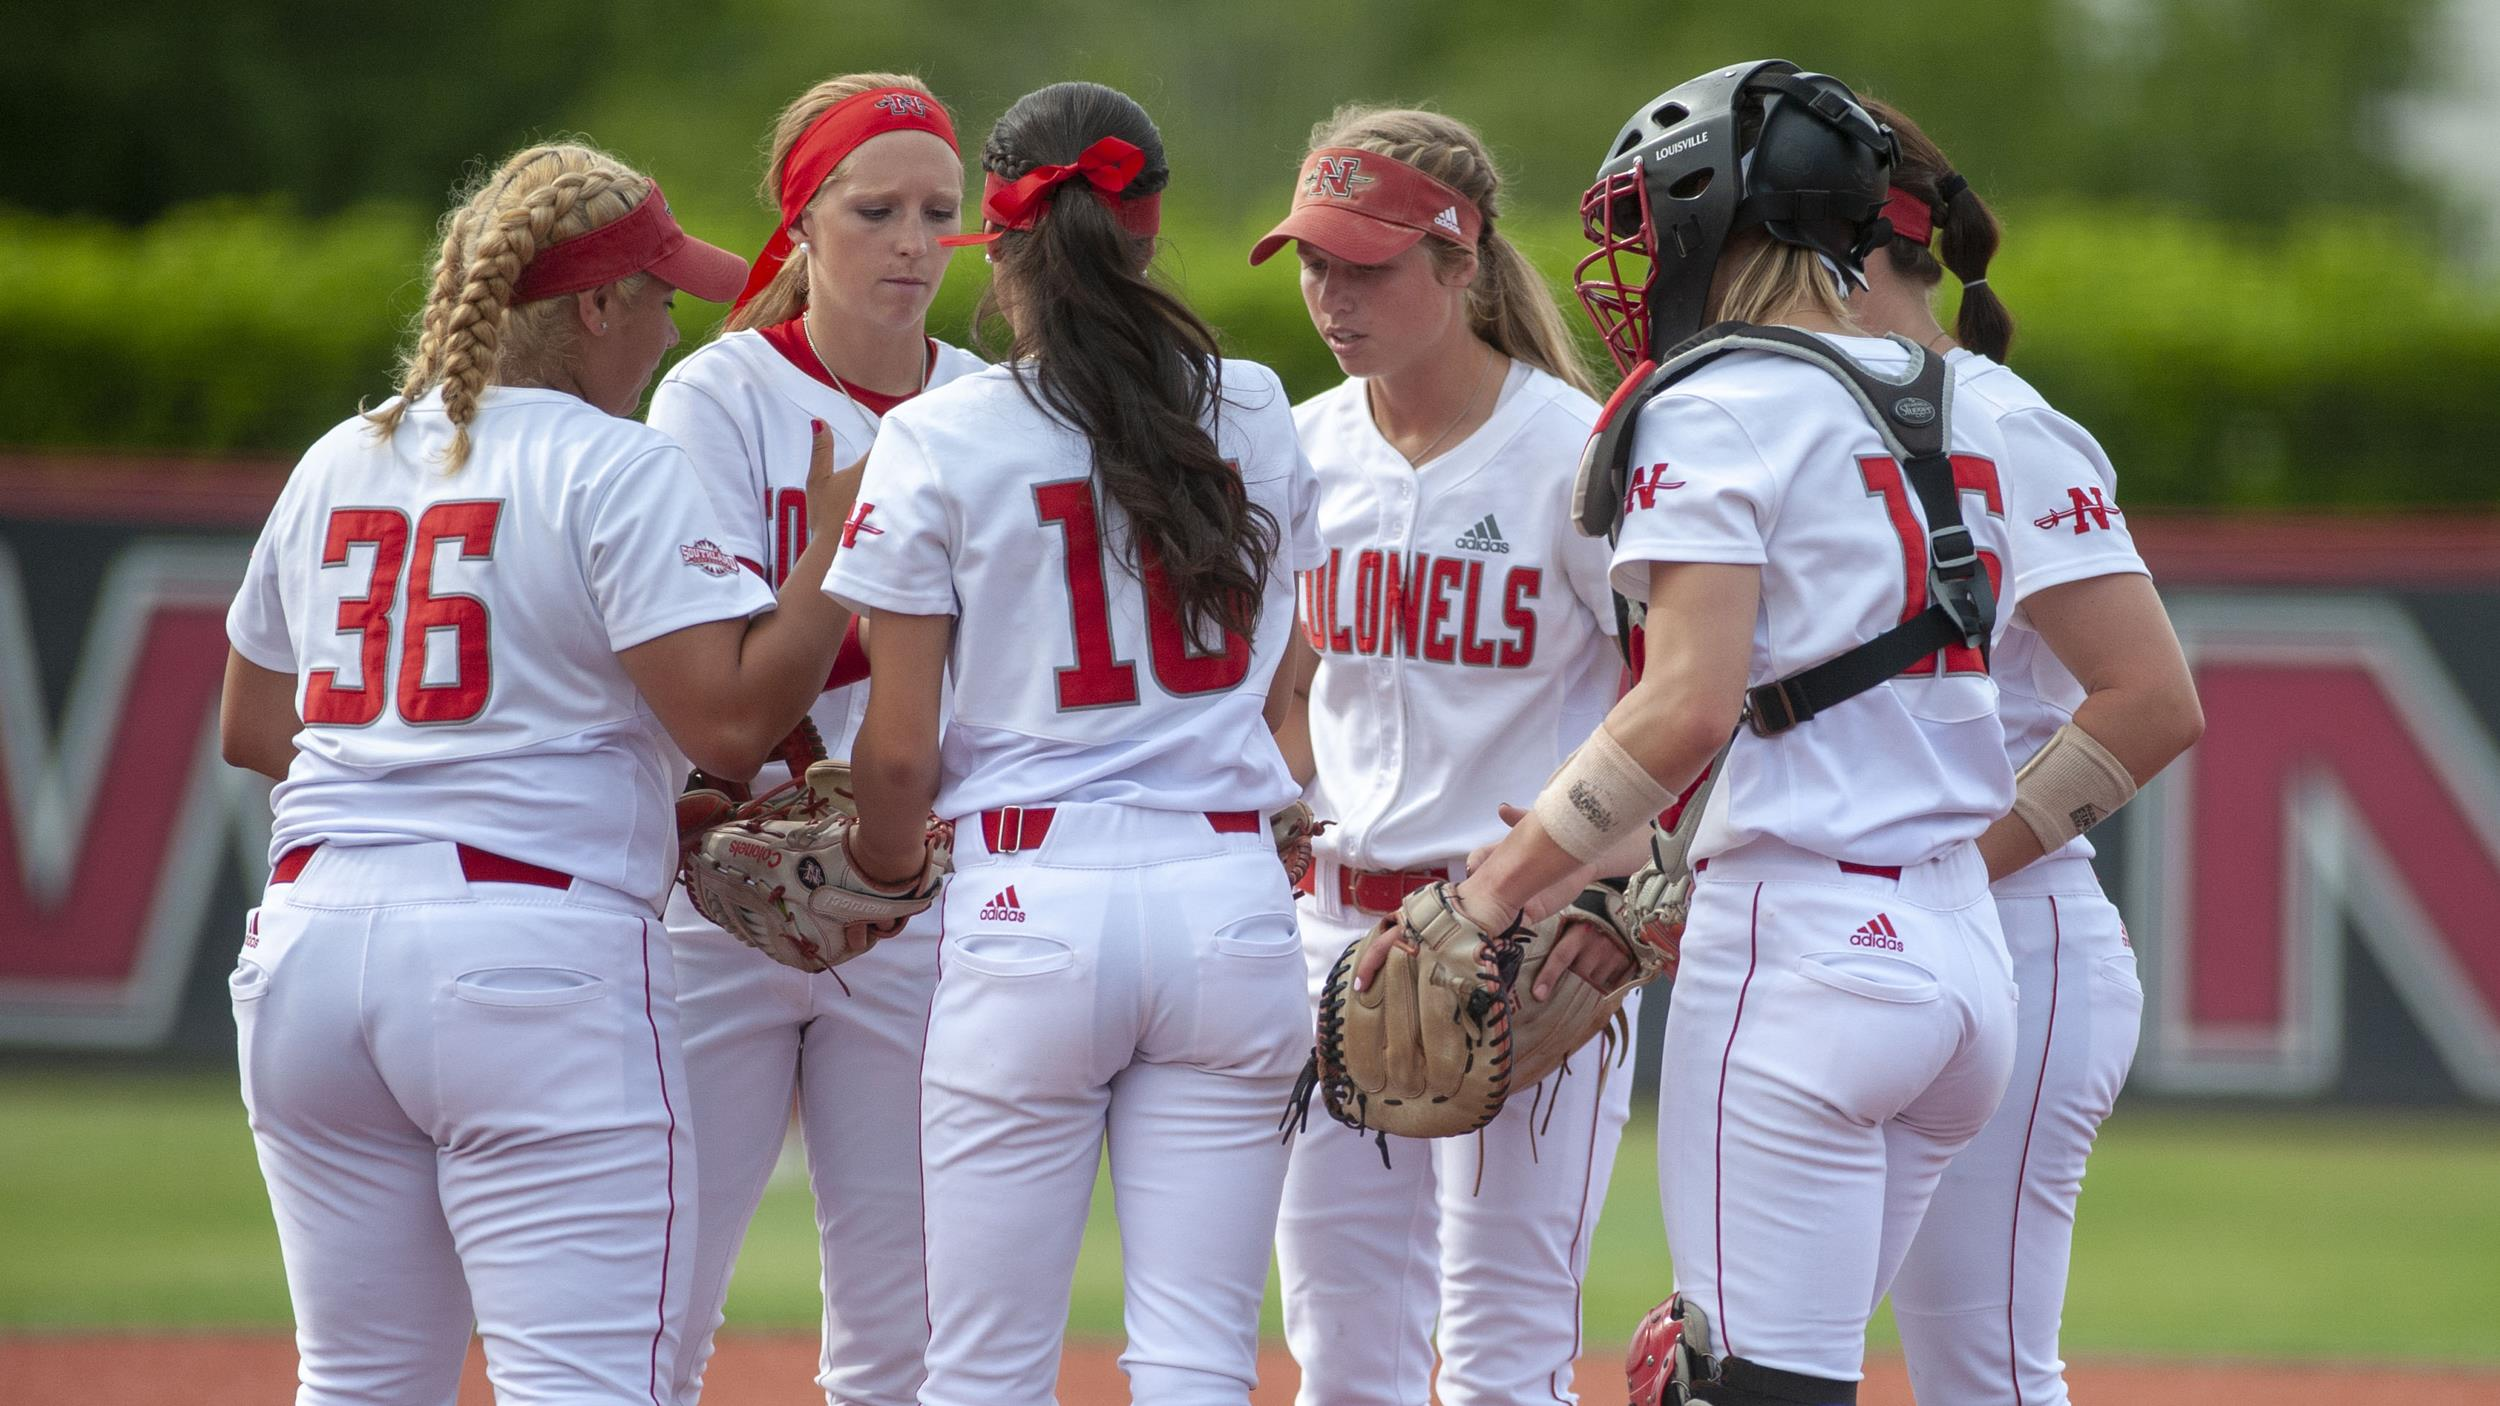 Lamar Outlasts Colonels in Extras, 4-3 - Nicholls State